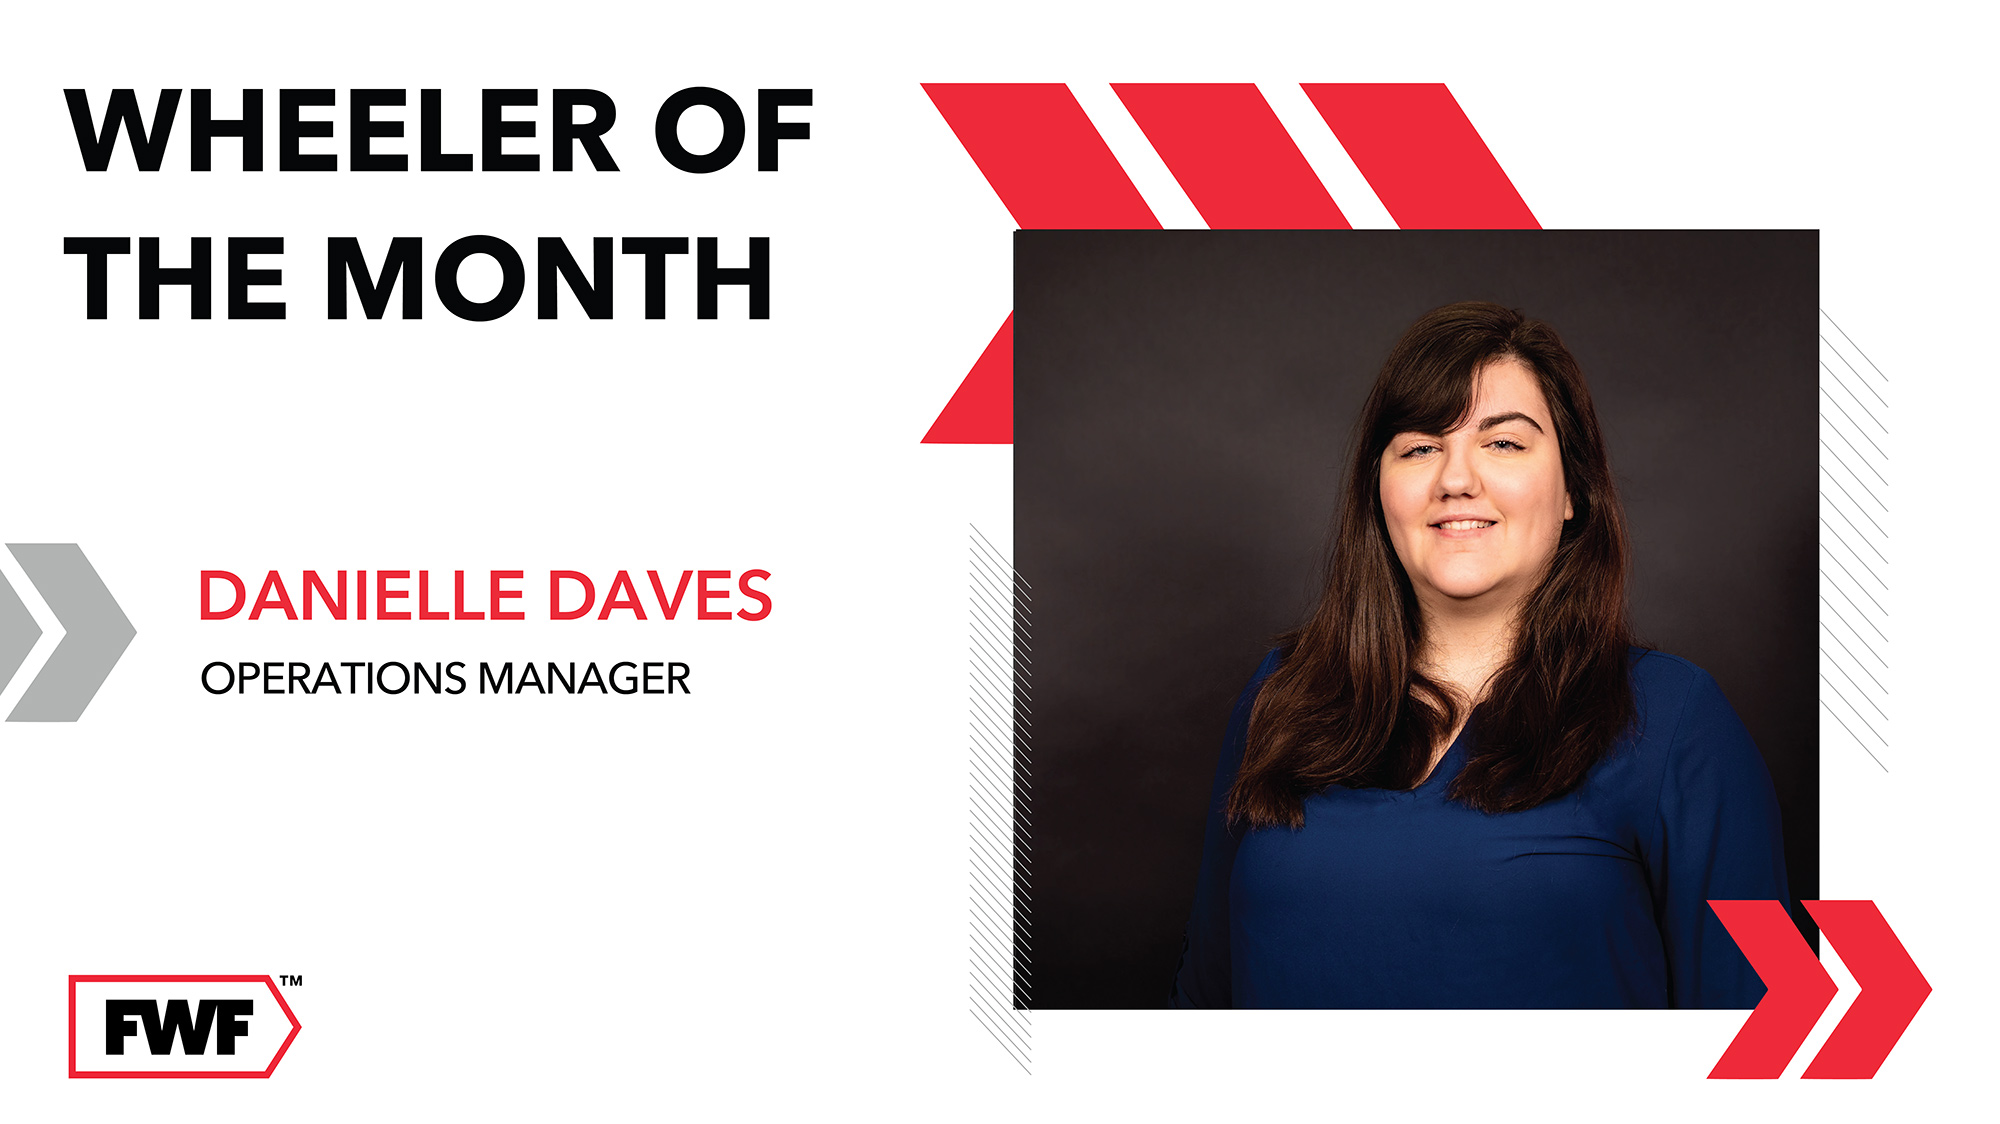 Danielle Daves is Fifth Wheel Freight's Wheeler of the Month